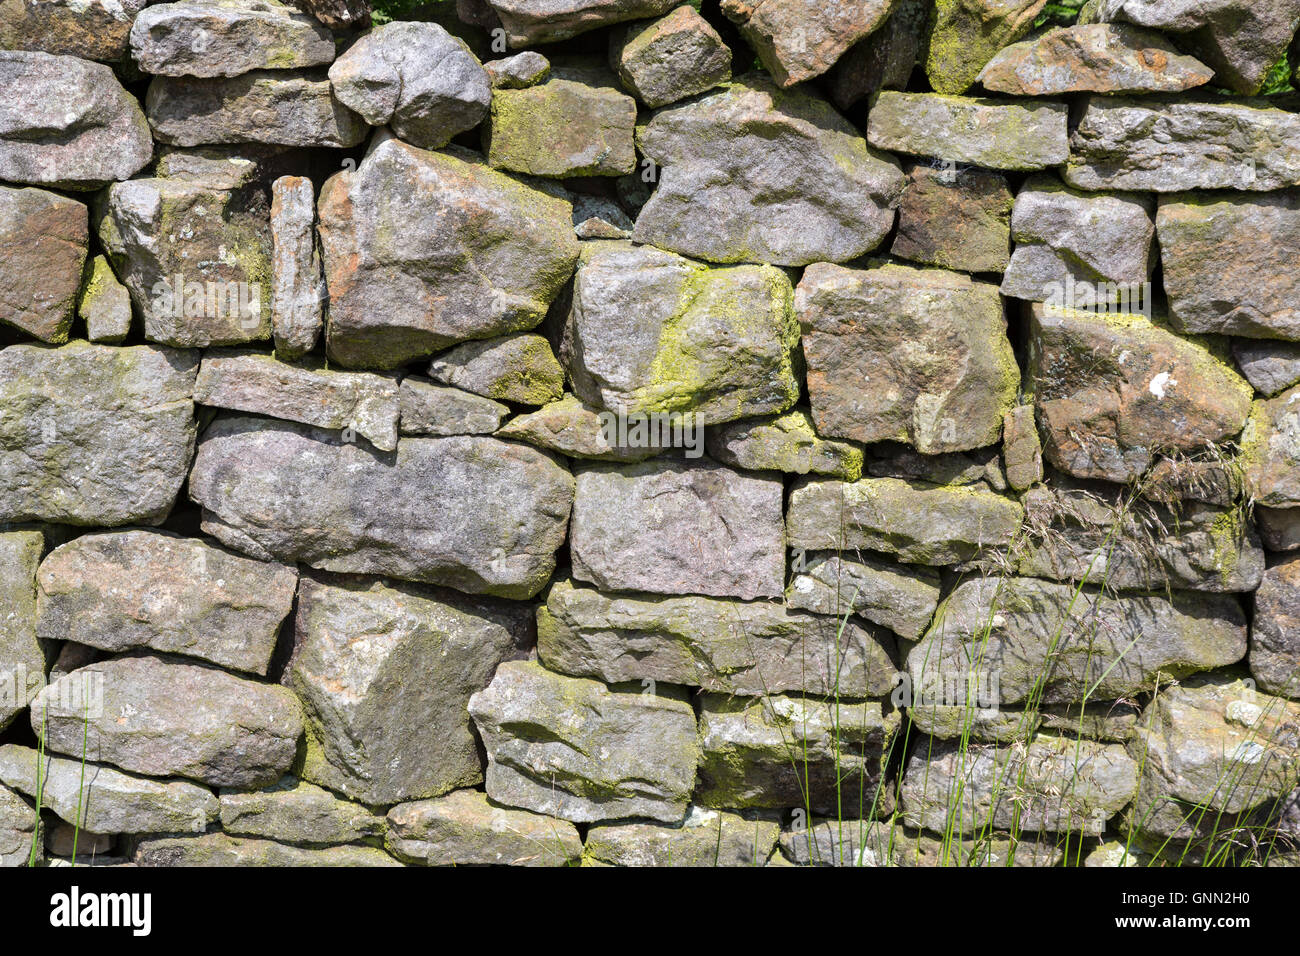 Cumbria, England, UK.  Modern Stone Wall Construction Delineating Farmers' Fields along Hadrian's Wall Footpath. - Stock Image